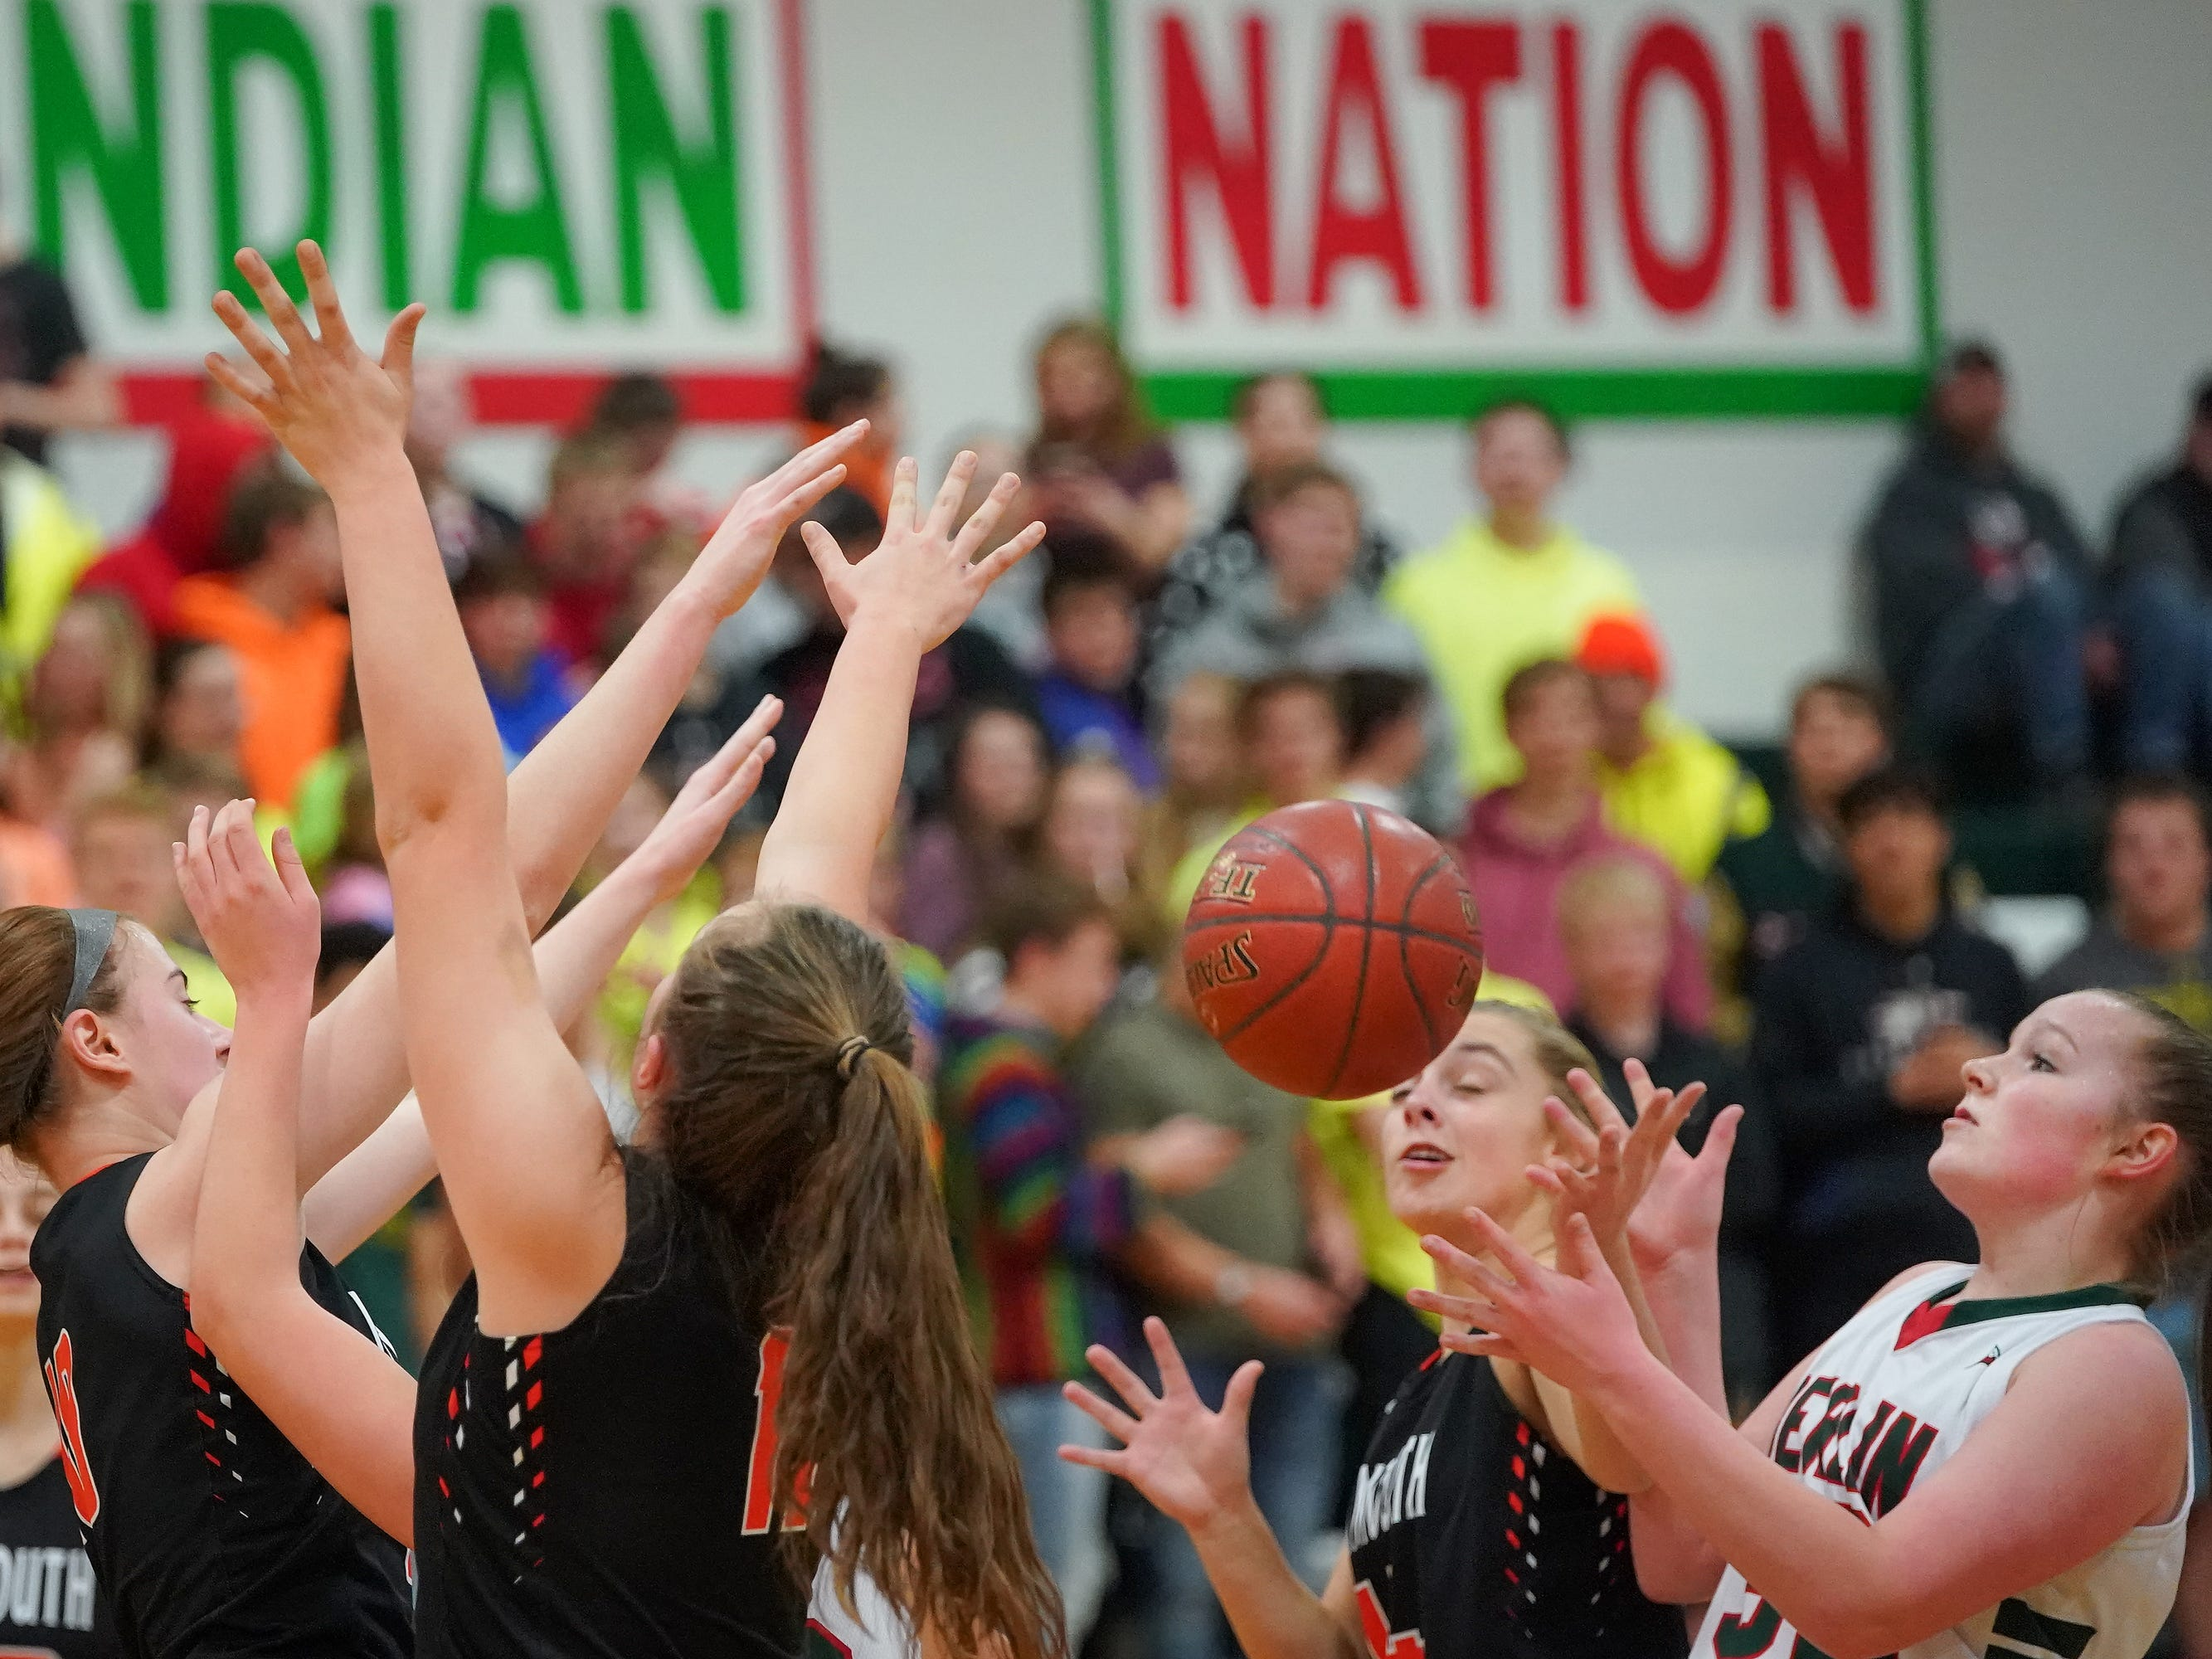 A battle for a rebound sends the ball toward Jenna Sternitske (32) of Berlin. The Berlin Indians hosted the Plymouth Panthers in an East Central Conference basketball game Thursday evening, December 13, 2018.